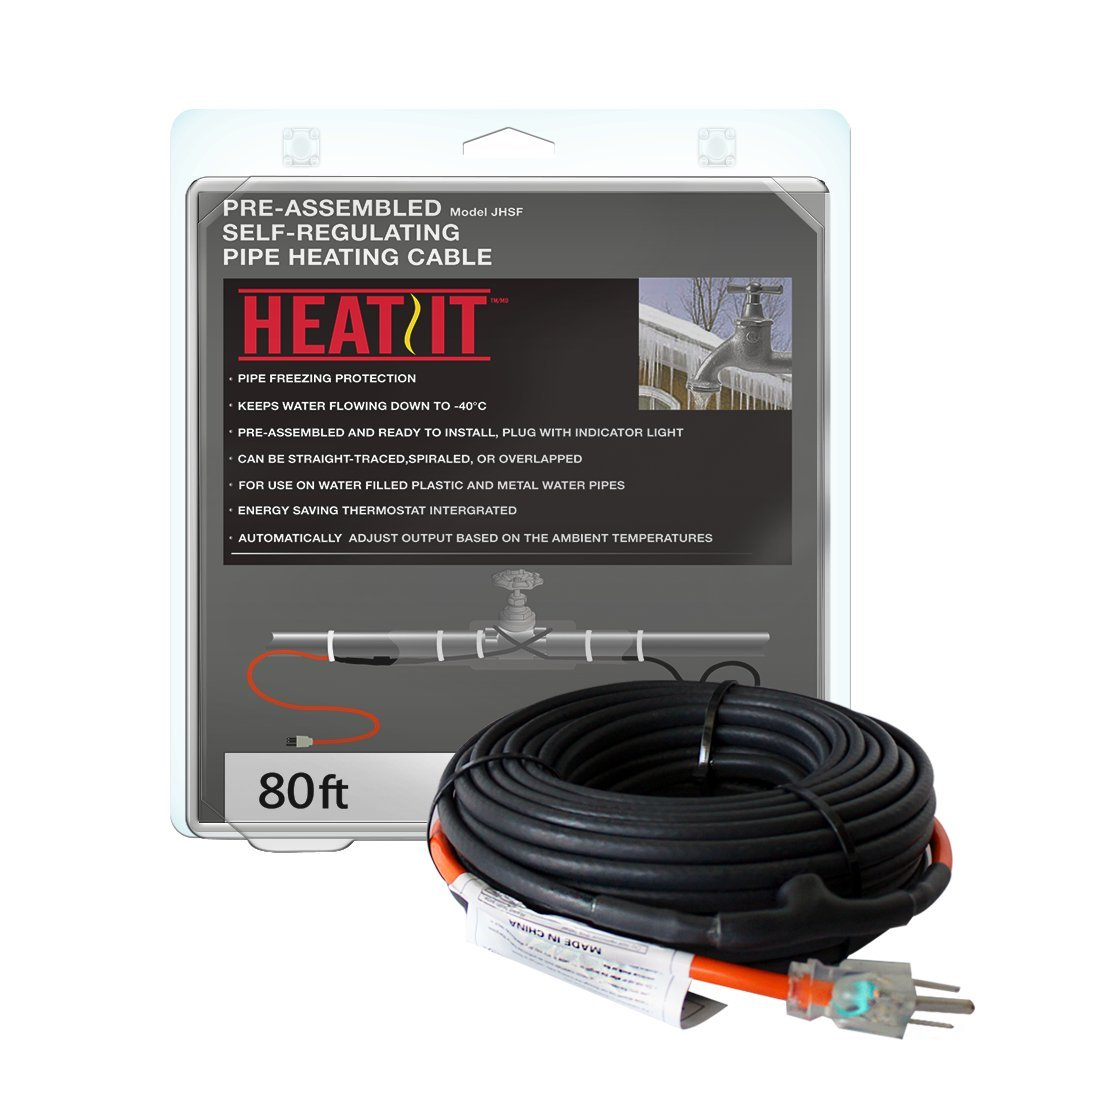 HEATIT JHSF 24-feet 120V Self Regulating Pre-assembled Pipe Heating Cable by HEATIT (Image #1)